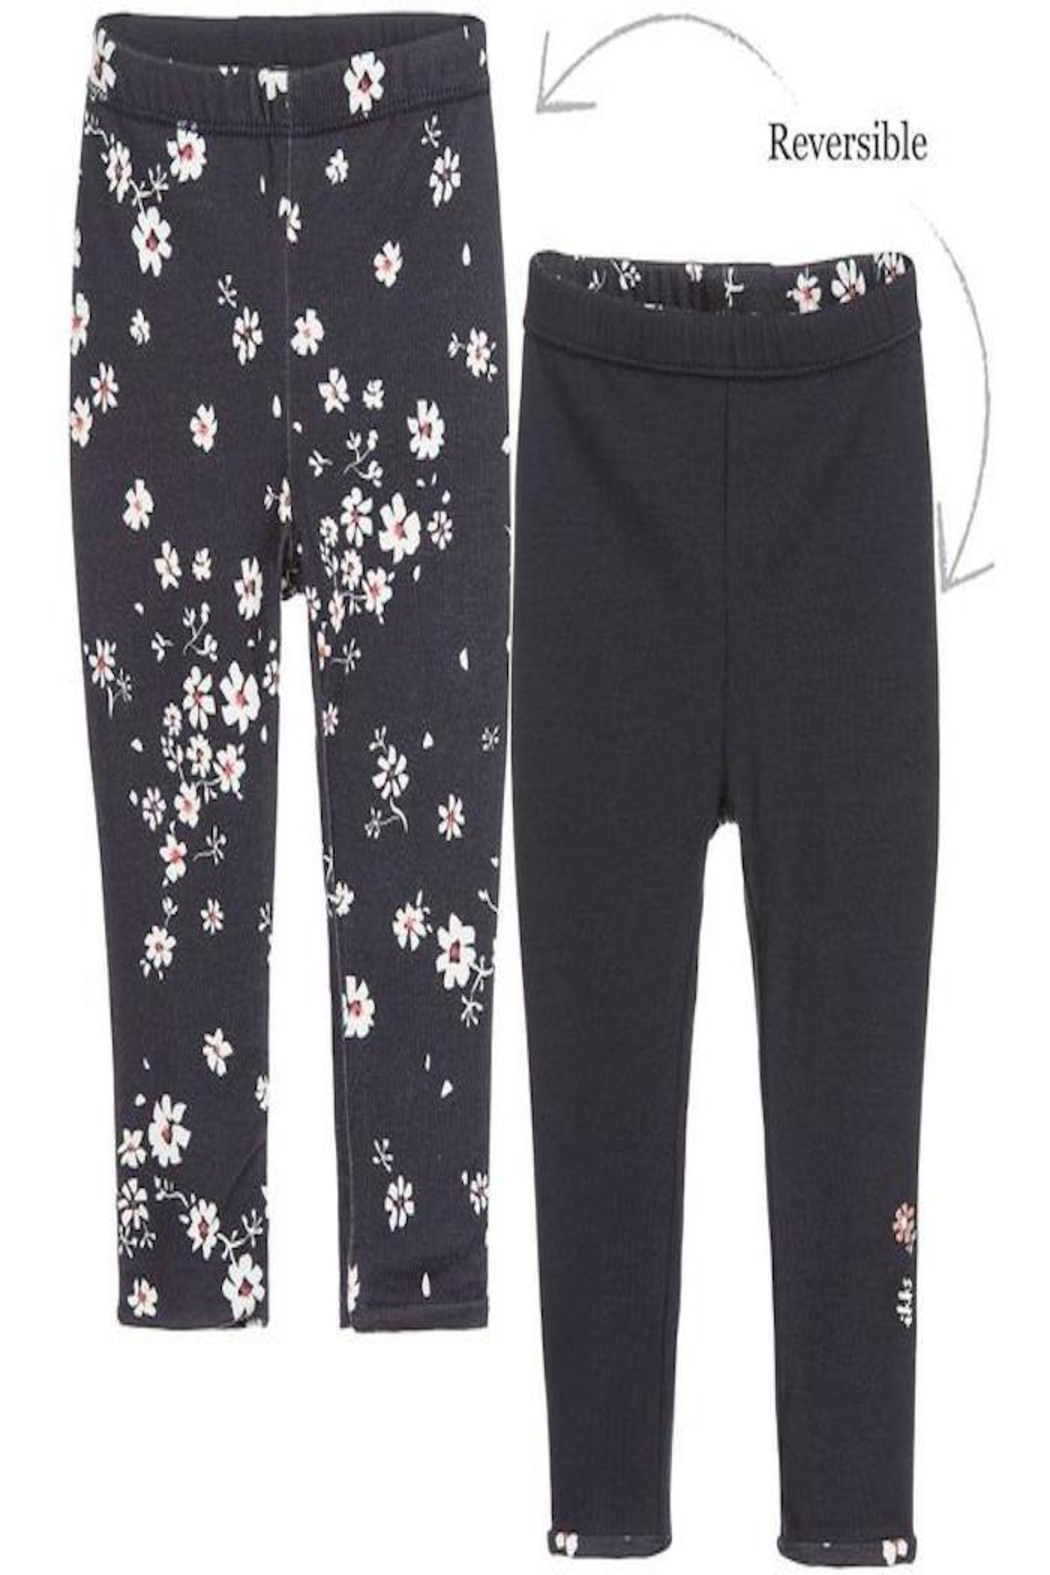 IKKS Floral Reversible Leggings - Main Image